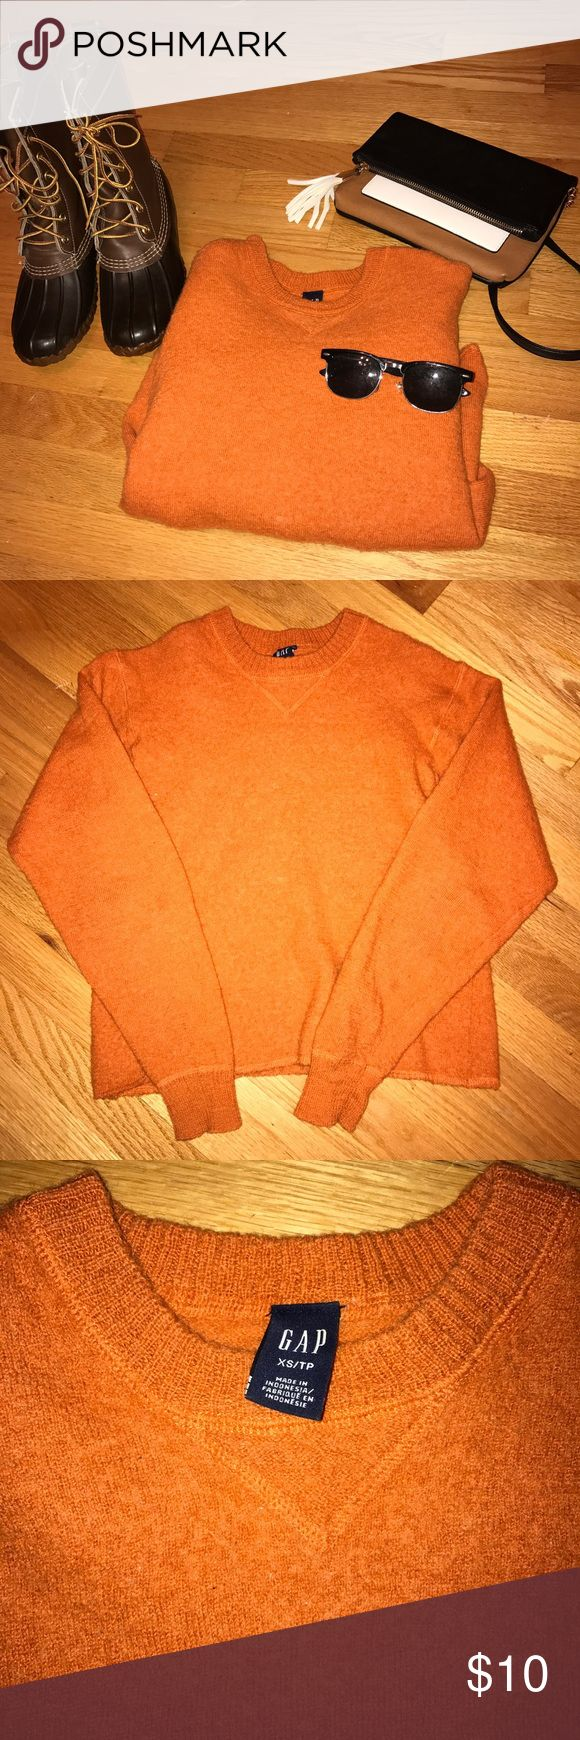 GAP Women's Orange Crew Neck Sweater Wool XS/TP 🍊Runs large! I wear a size 2 and small in sweaters but this fit! Just need to clean the closet🍊Perfect for the Fall  🍊Pre-owned in great condition 🍊Goes great with jeans and hunting boots 🍊BUNDLE WITH 1 OTHER ITEM FOR DISCOUNT🍊 GAP Sweaters Crew & Scoop Necks